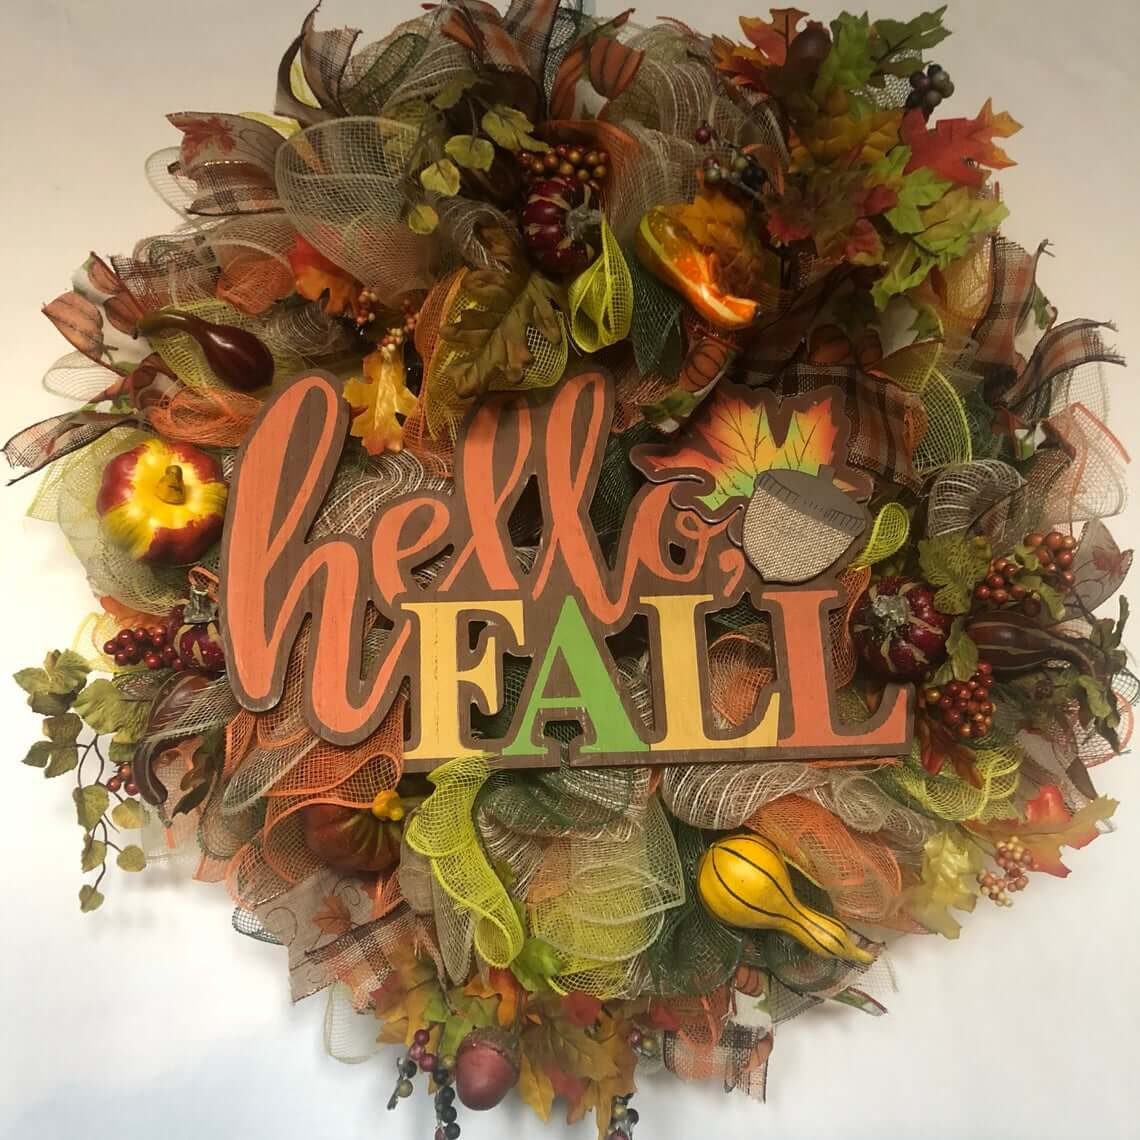 Welcome to the Season Wreath